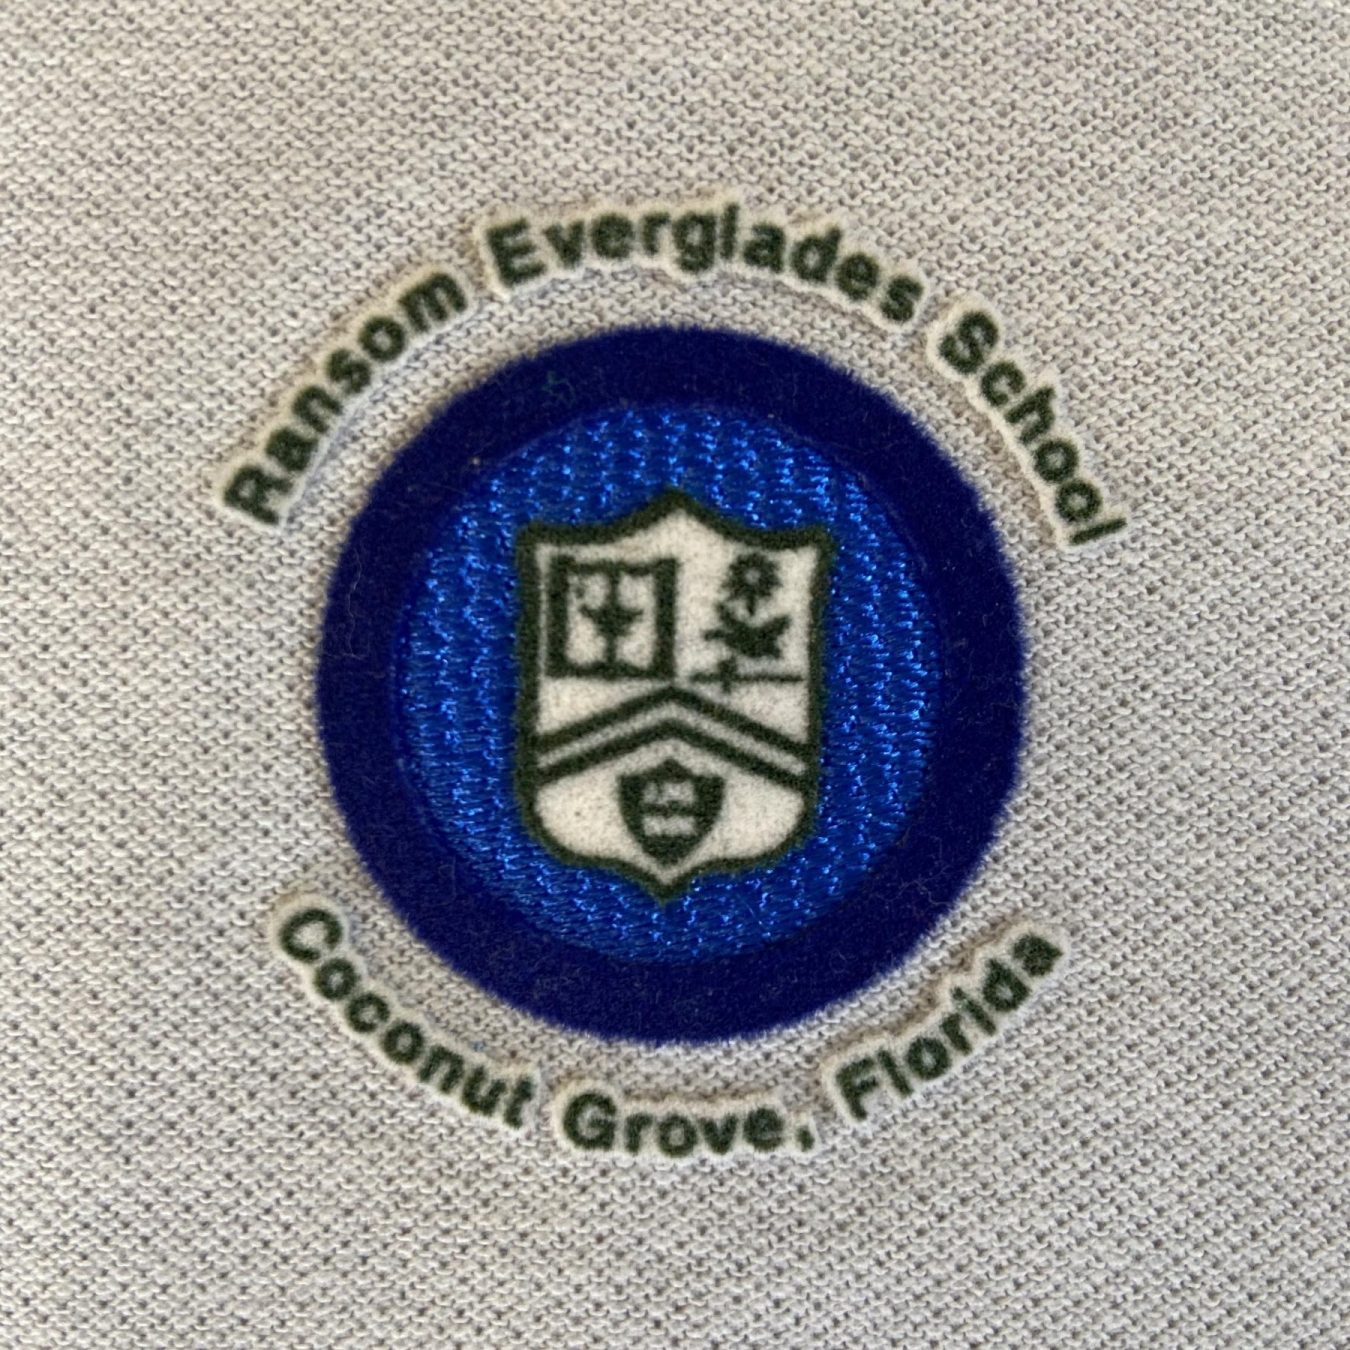 Ransom Everglades School 3D Patch